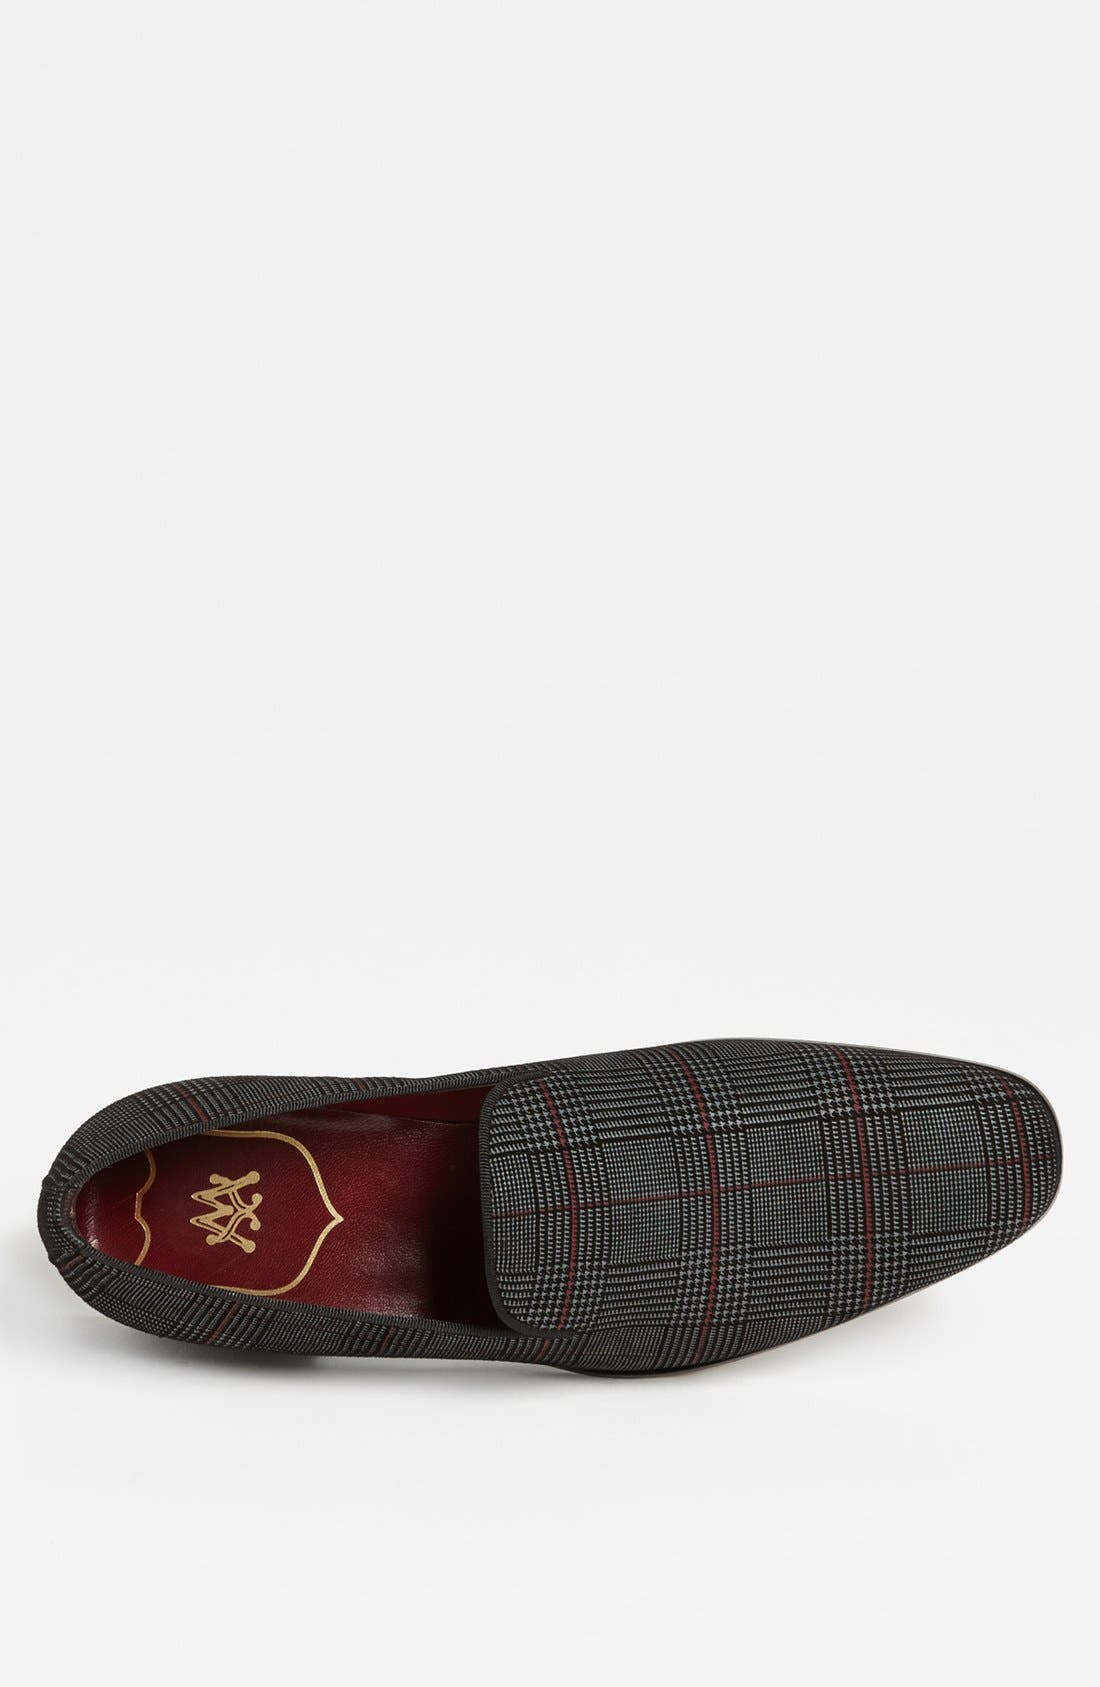 Alternate Image 3  - Mezlan 'Prizzi' Loafer